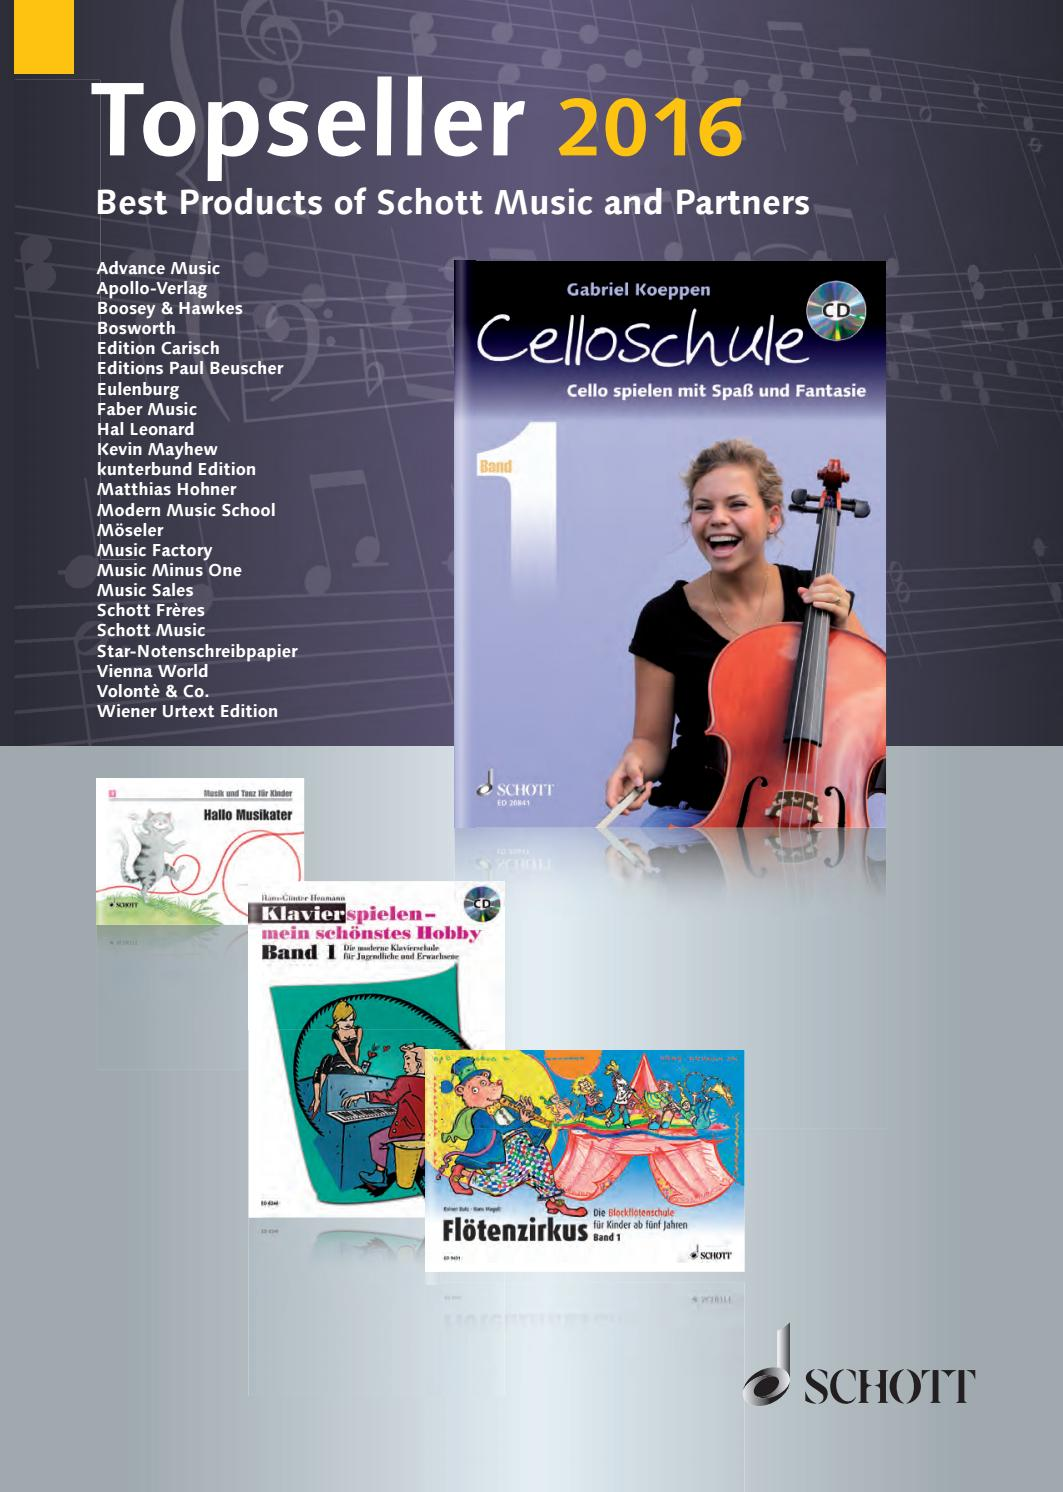 Kat 205 99 topseller 2016 web by Schott Music - issuu